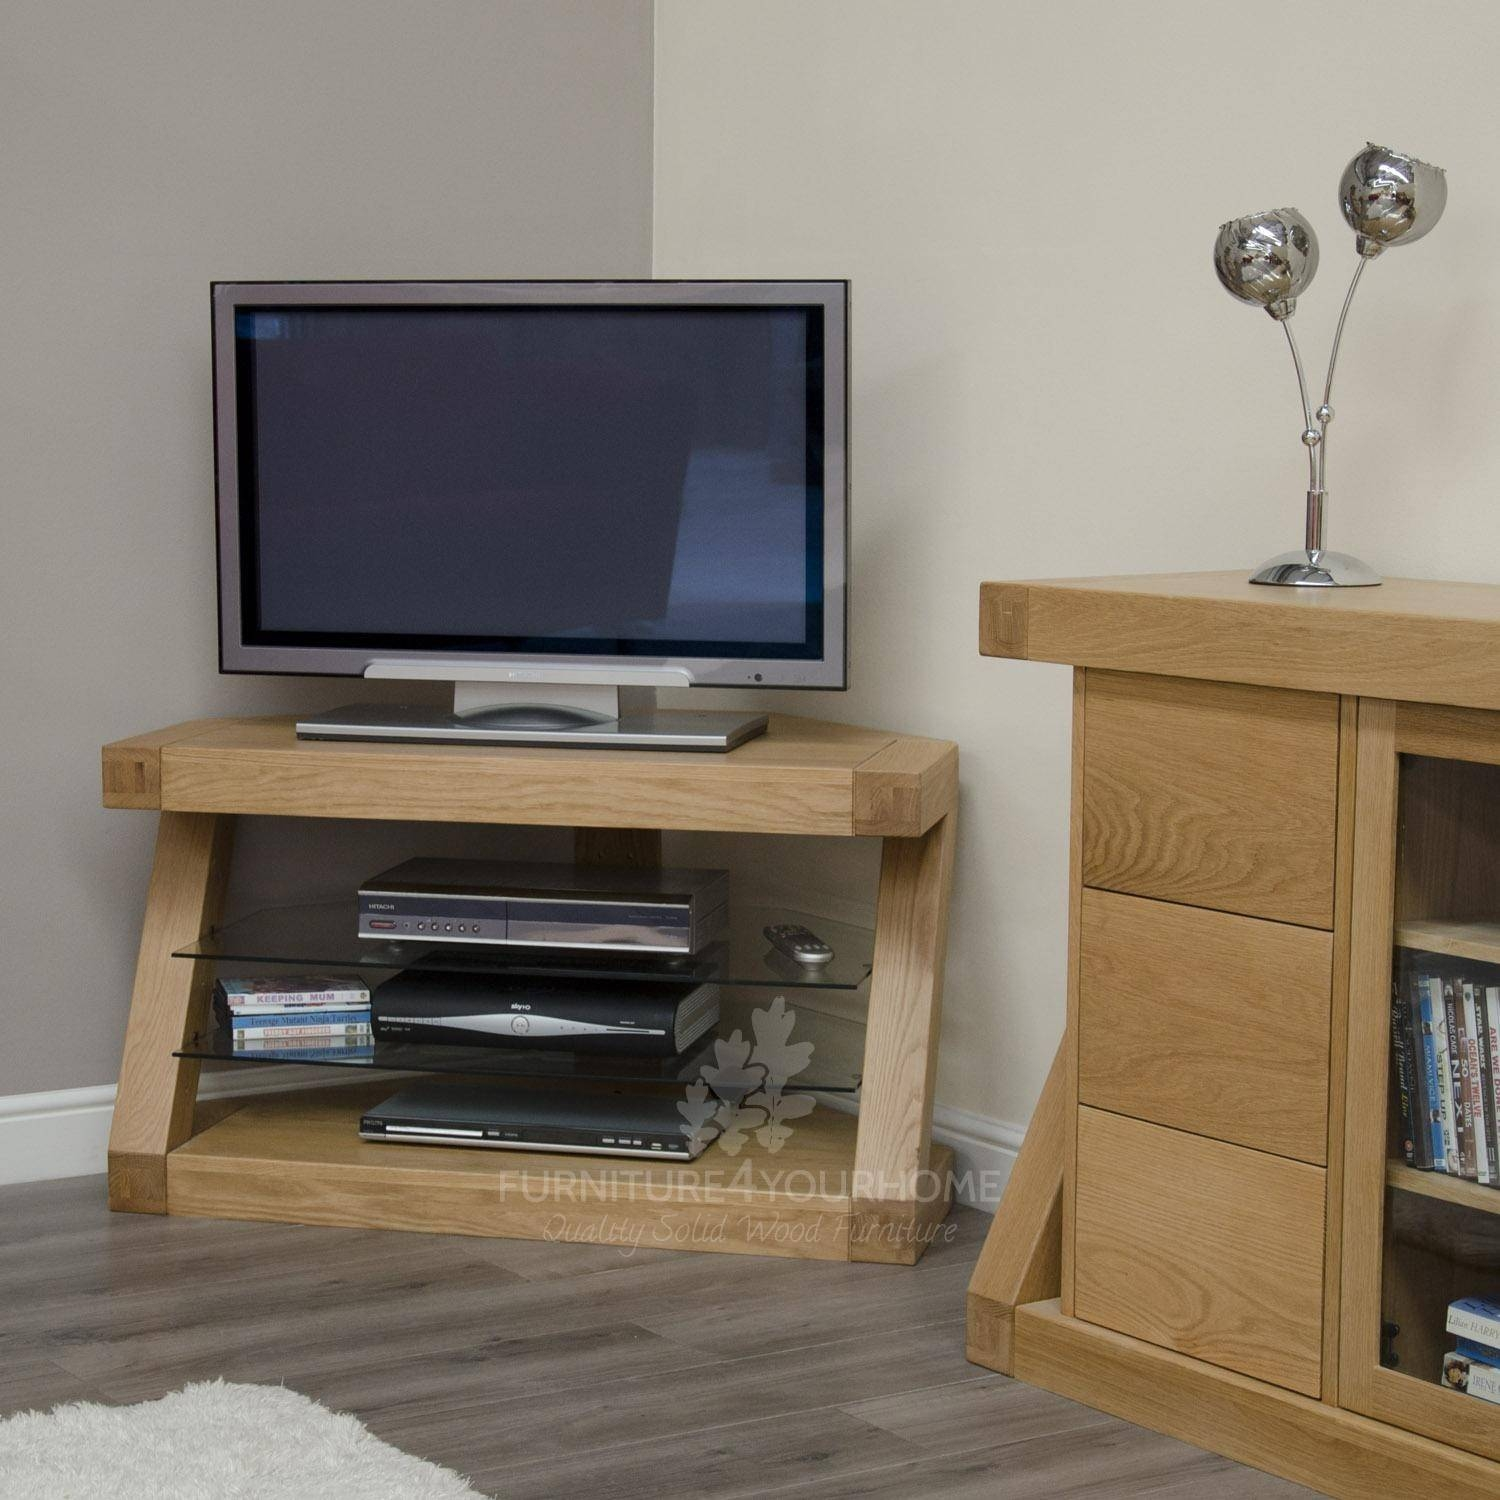 Z Solid Oak Designer Corner Tv Unit | Furniture4Yourhome regarding Light Oak Tv Cabinets (Image 15 of 15)